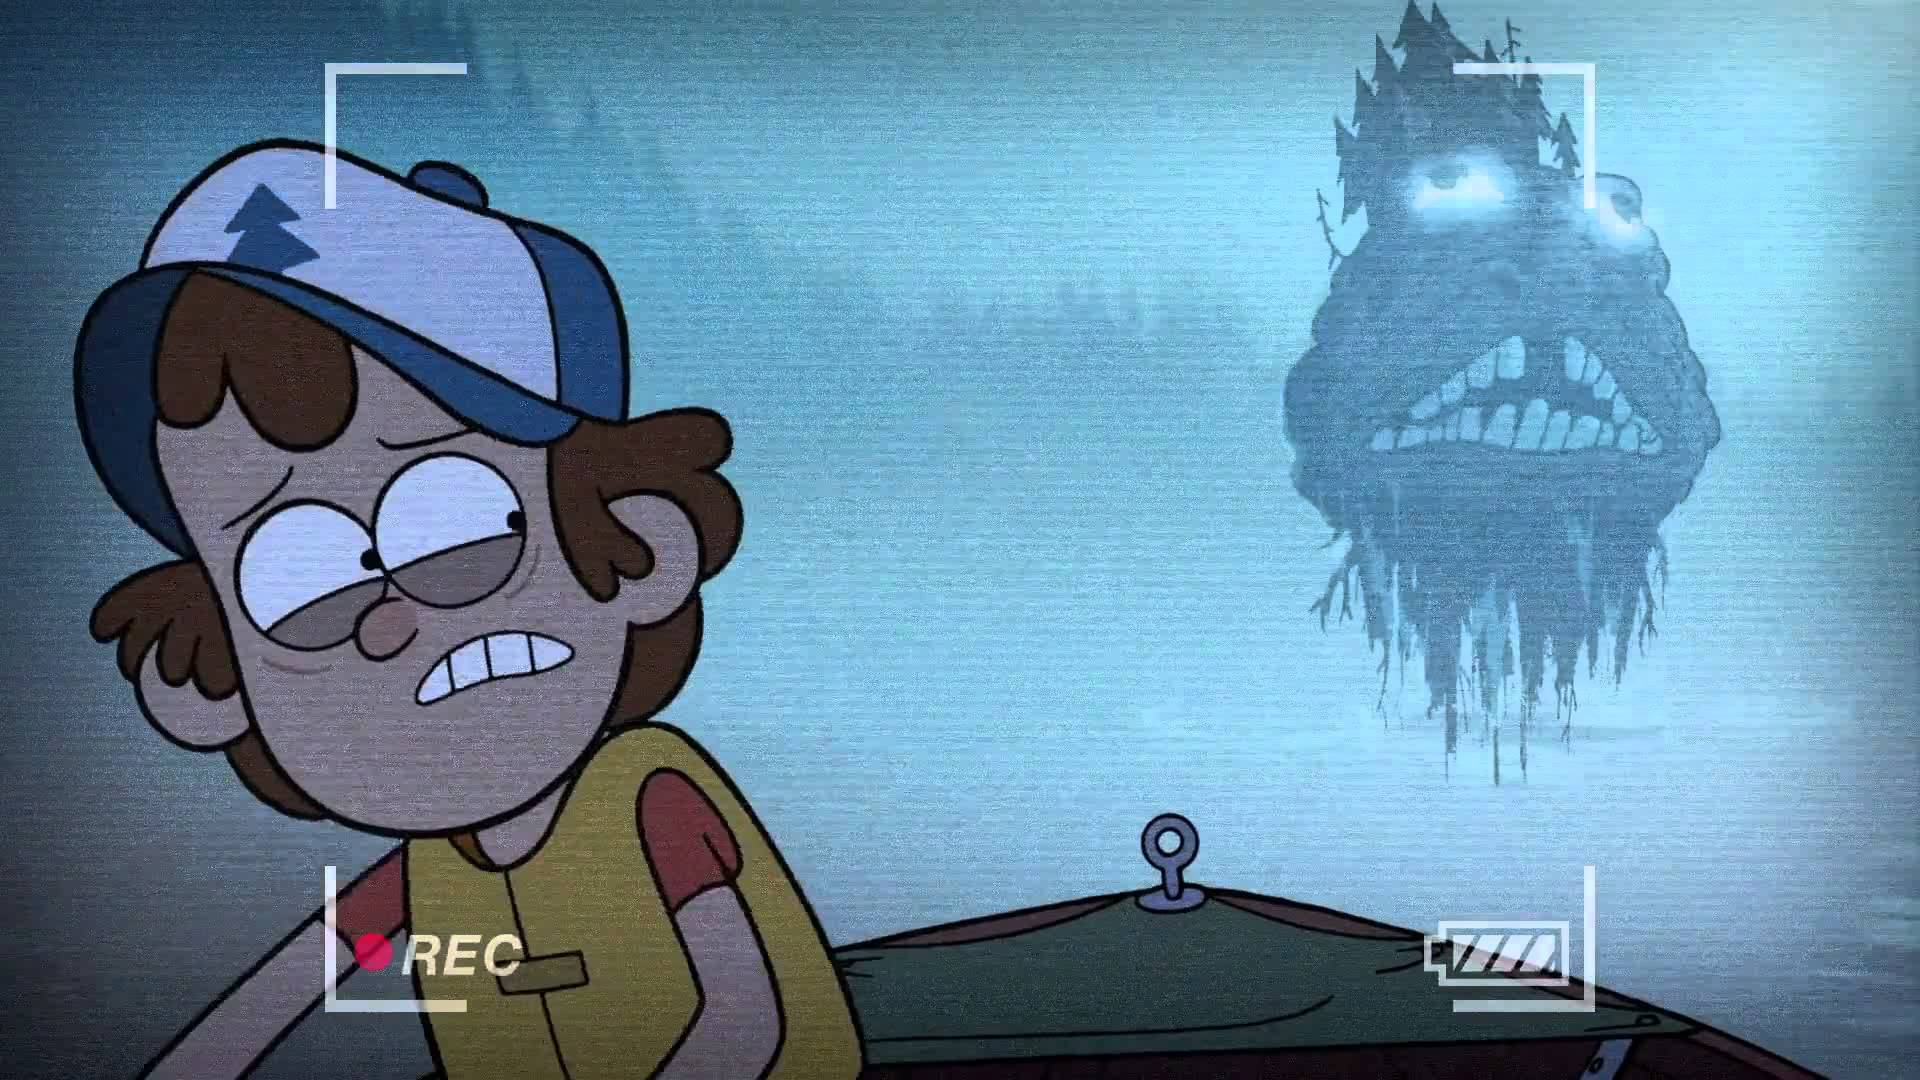 Gravity Falls Wallpaper Hd Iphone Gravity Falls Wallpapers High Quality Download Free